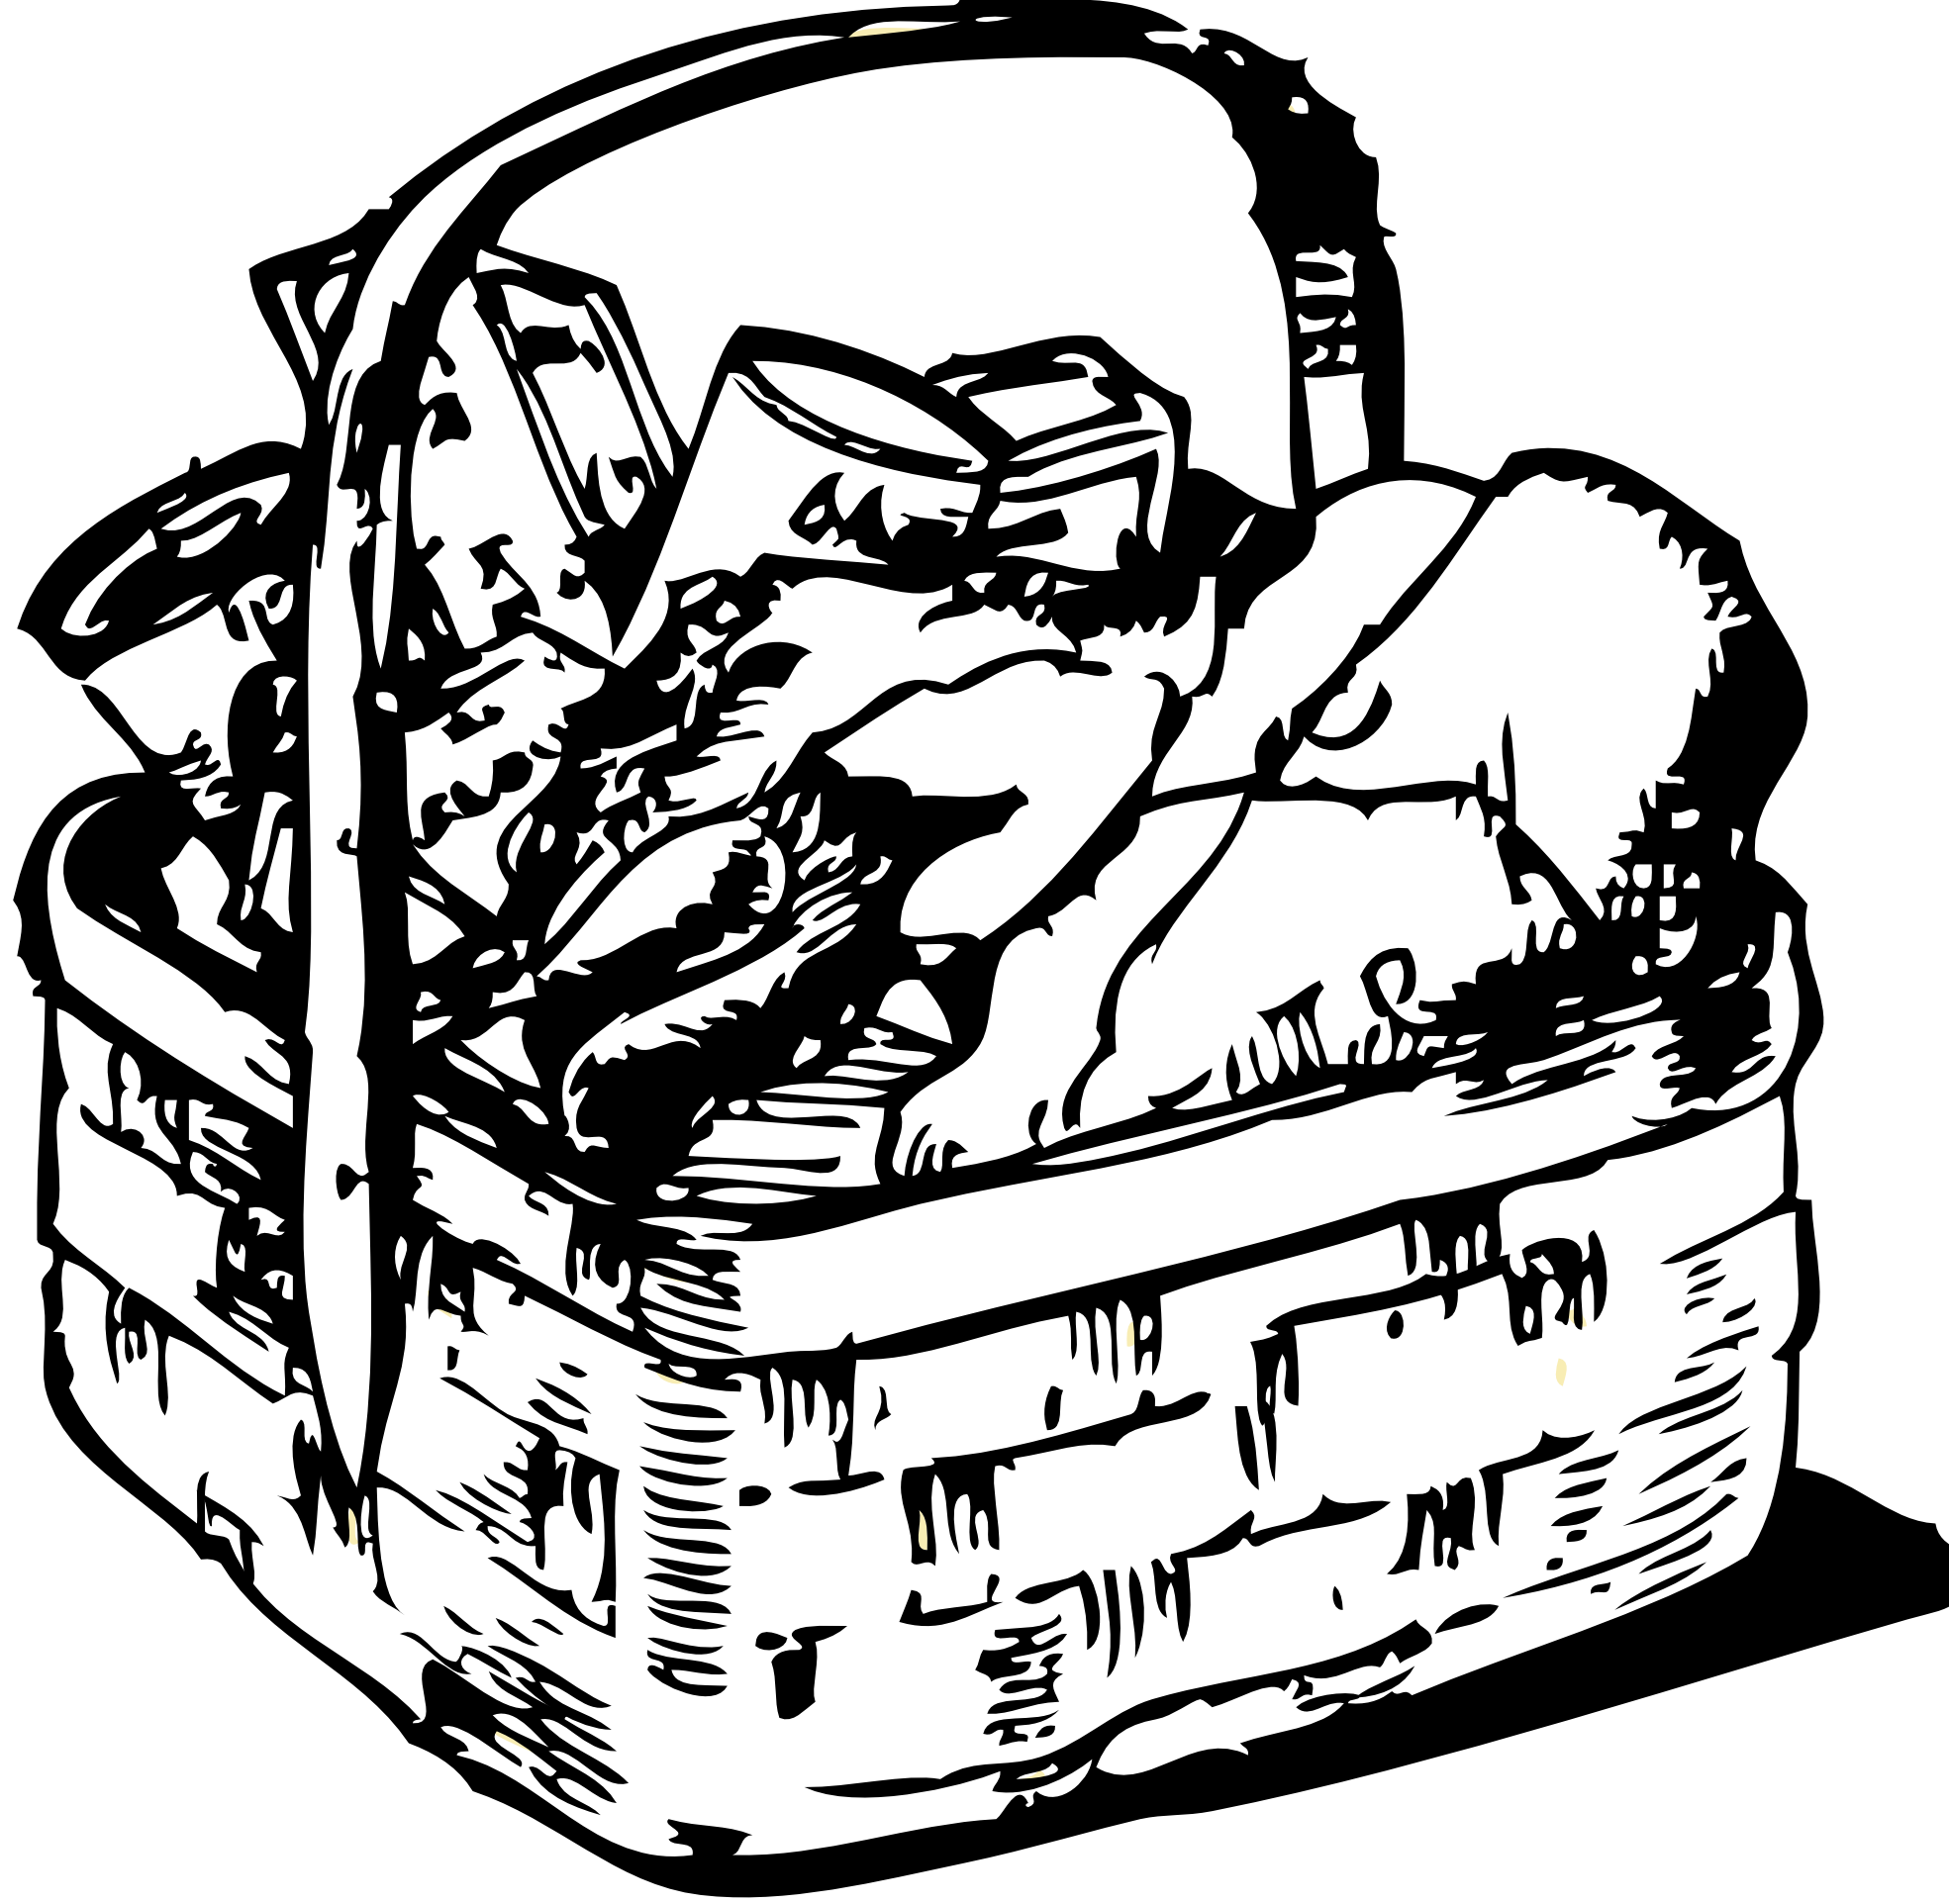 Basket Clip Art Black And White : Food basket black white line art coloring book